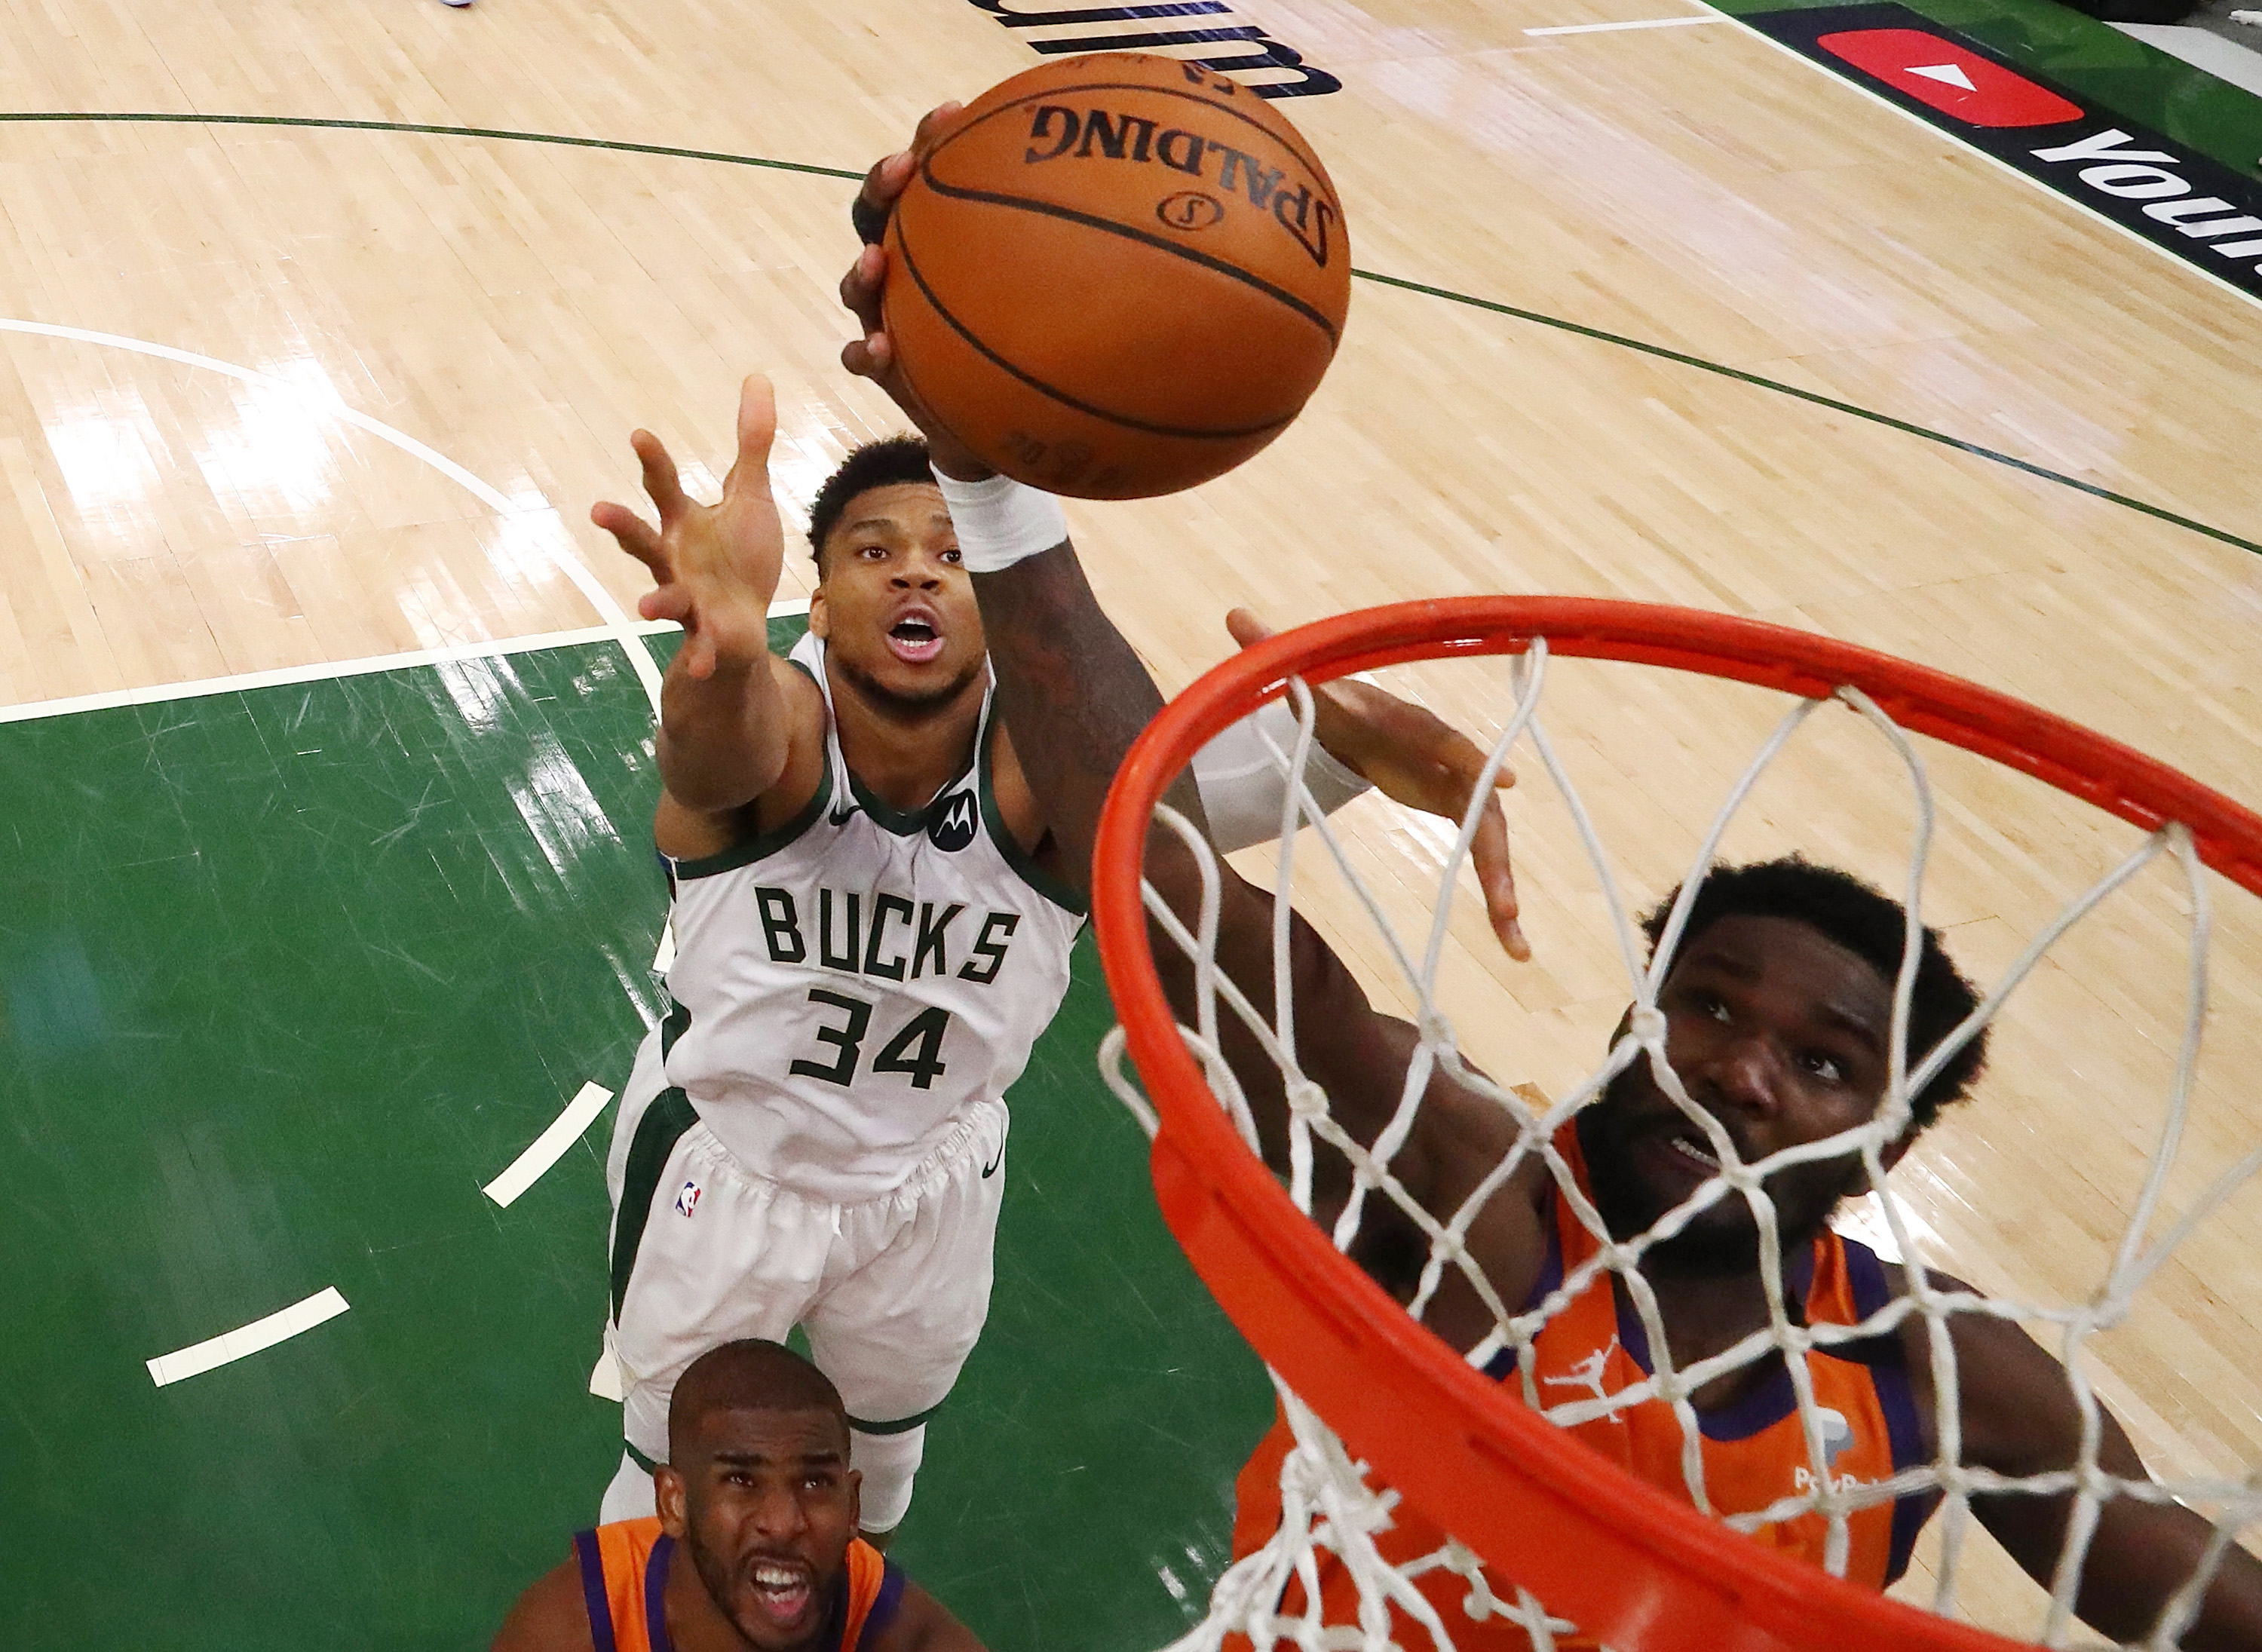 Deandre Ayton #22 of the Phoenix Suns goes up for a shot against Giannis Antetokounmpo #34 of the Milwaukee Bucks in Game Four of the NBA Finals at Fiserv Forum on July 14, 2021 in Milwaukee, Wisconsin.